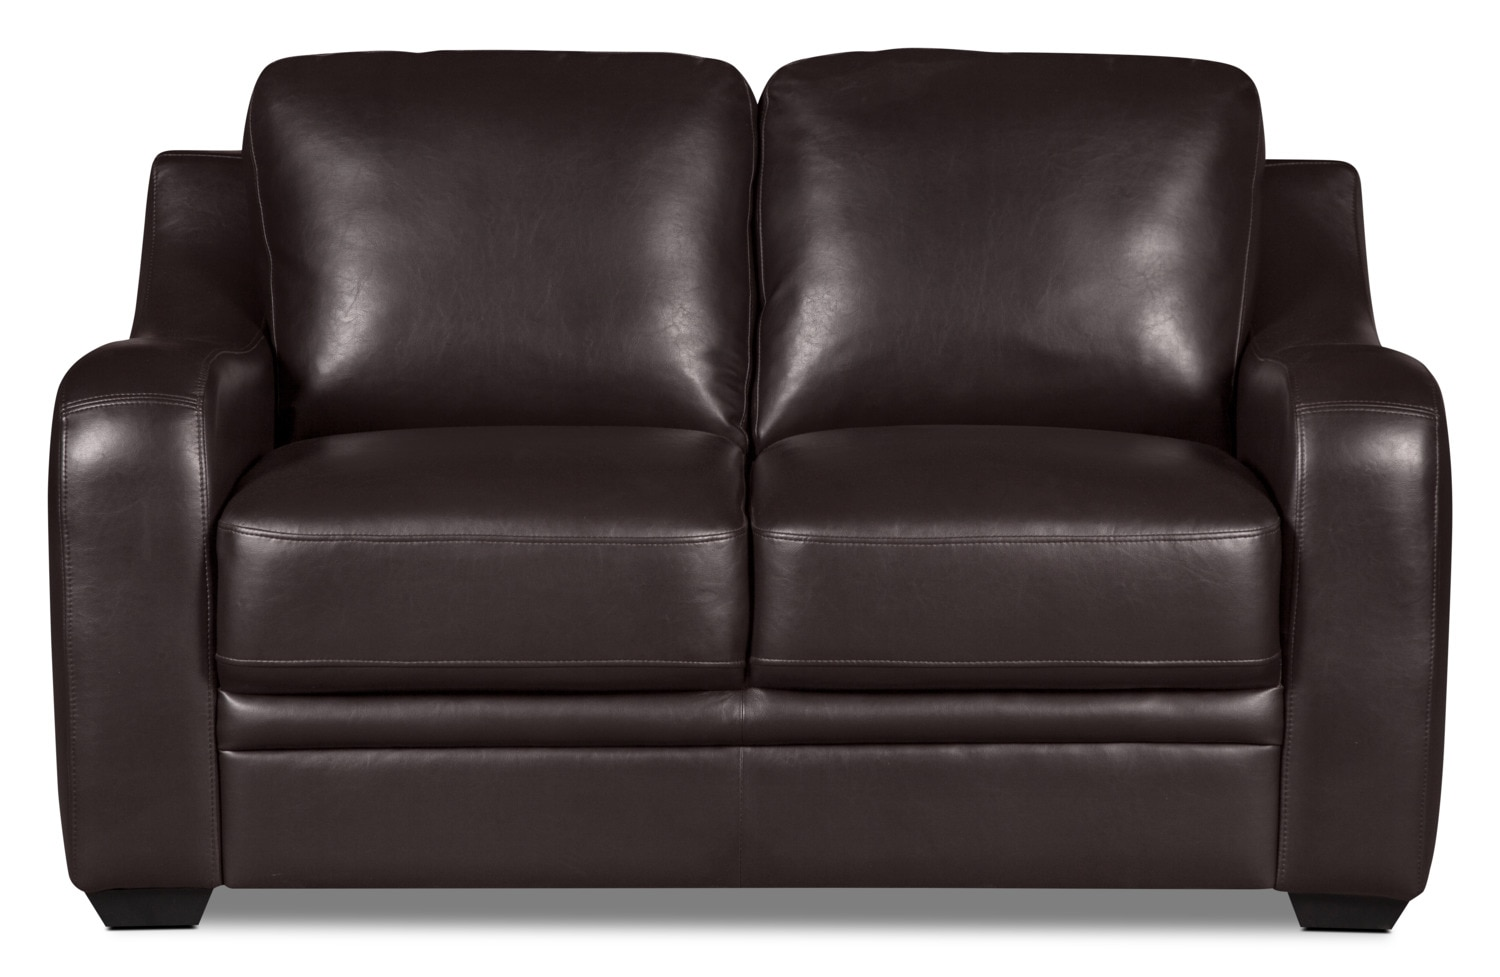 Saving you more on sofas loveseats and chairs The Brick